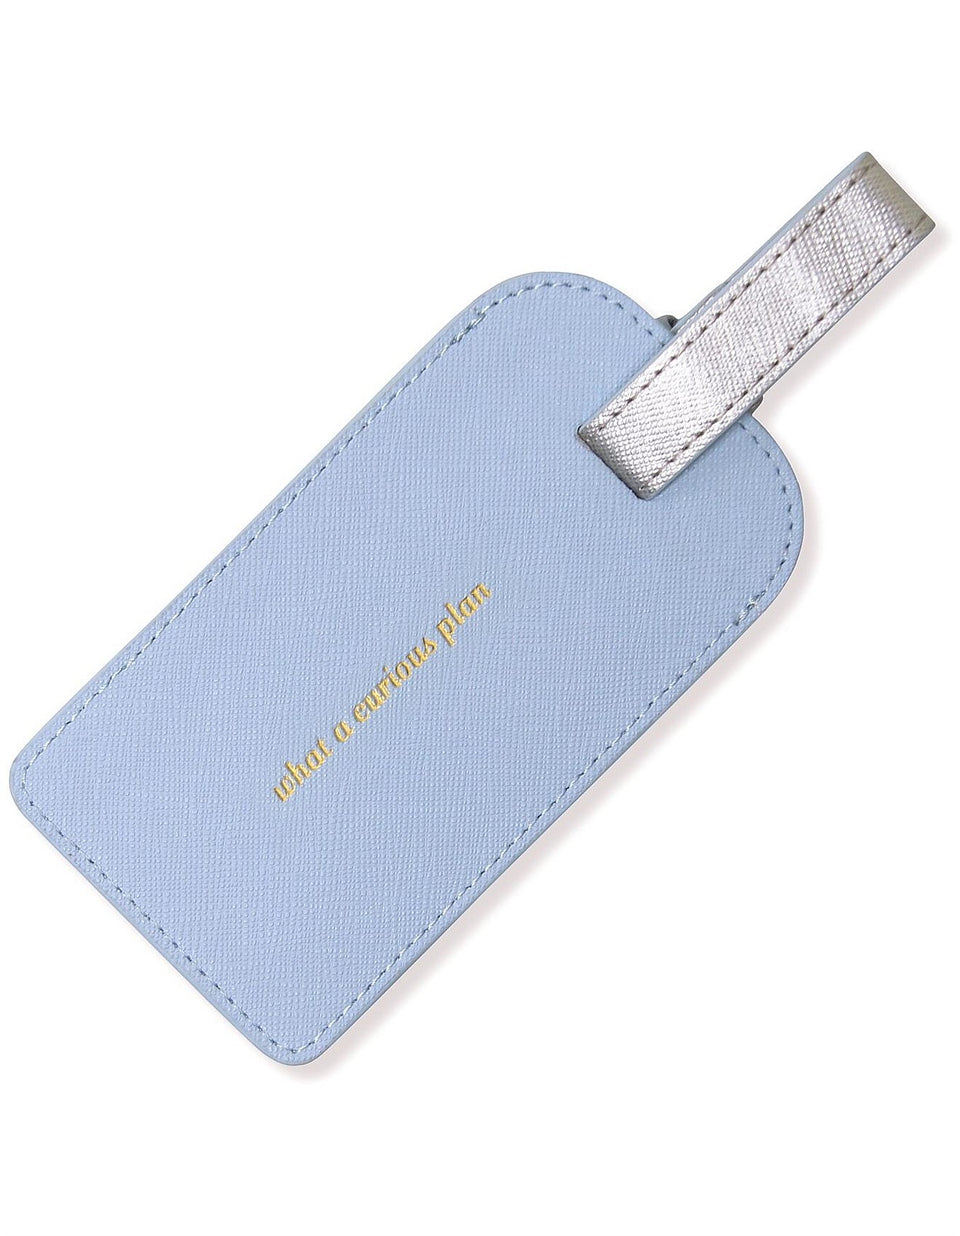 Leather Luggage Tag | Misty Blue & Silver